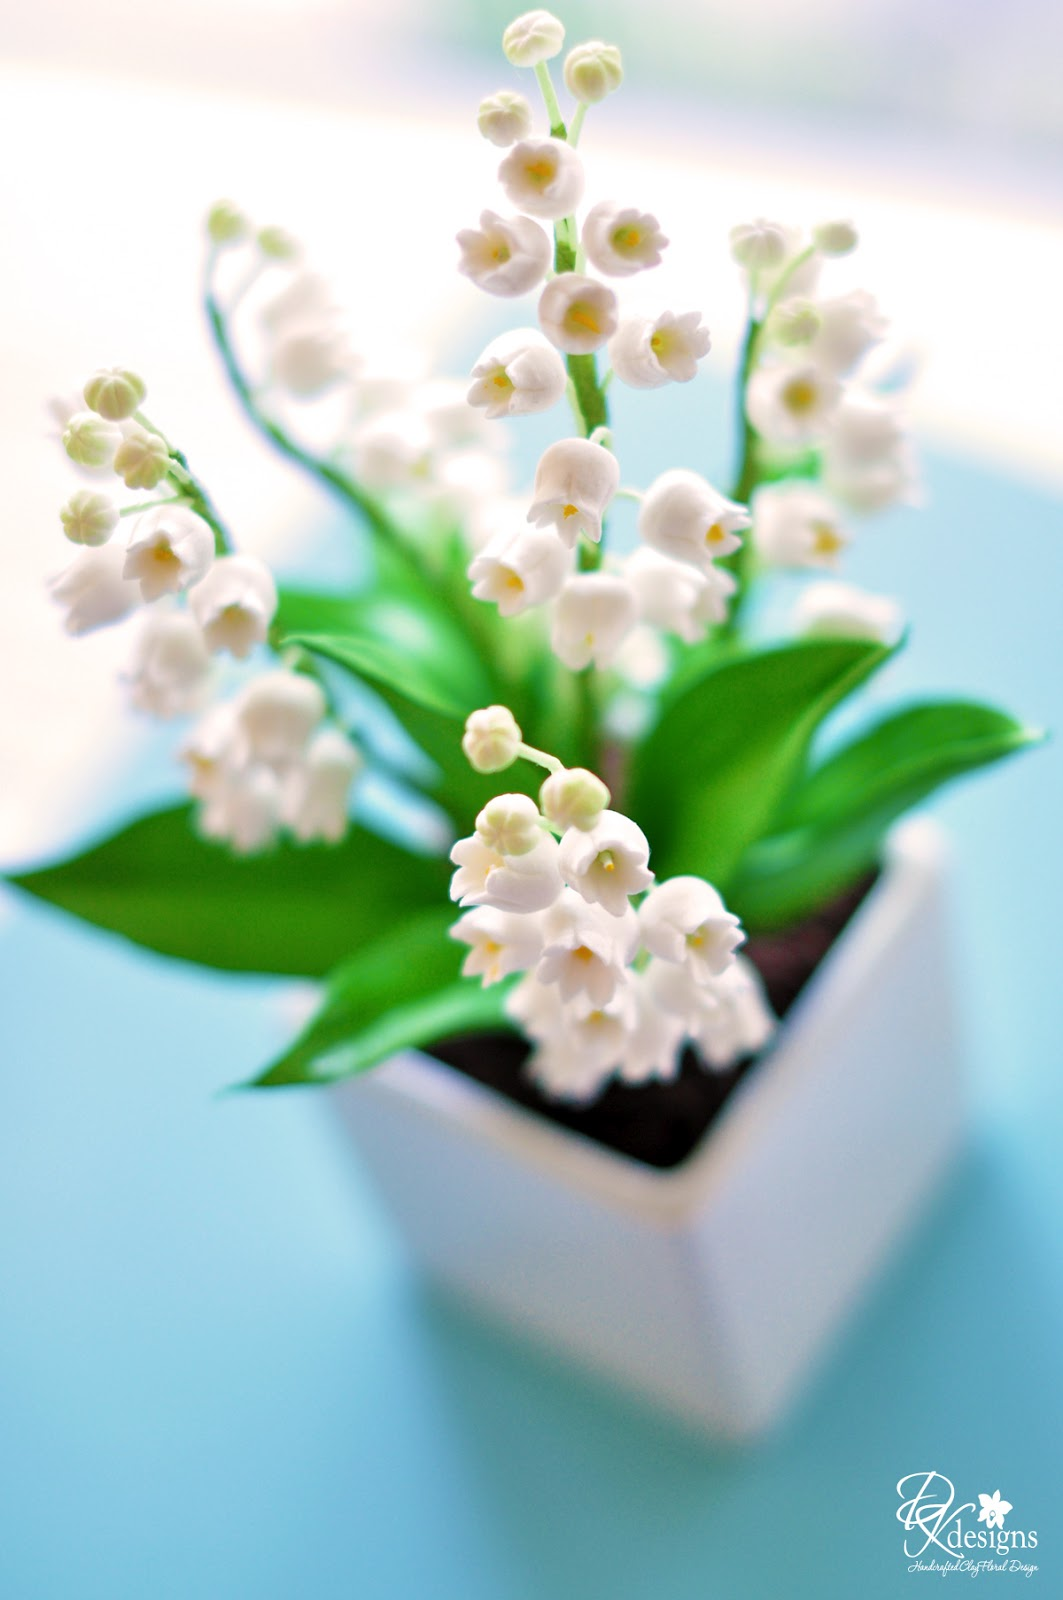 Lily of the valley plant dk designs lily of the valley plant izmirmasajfo